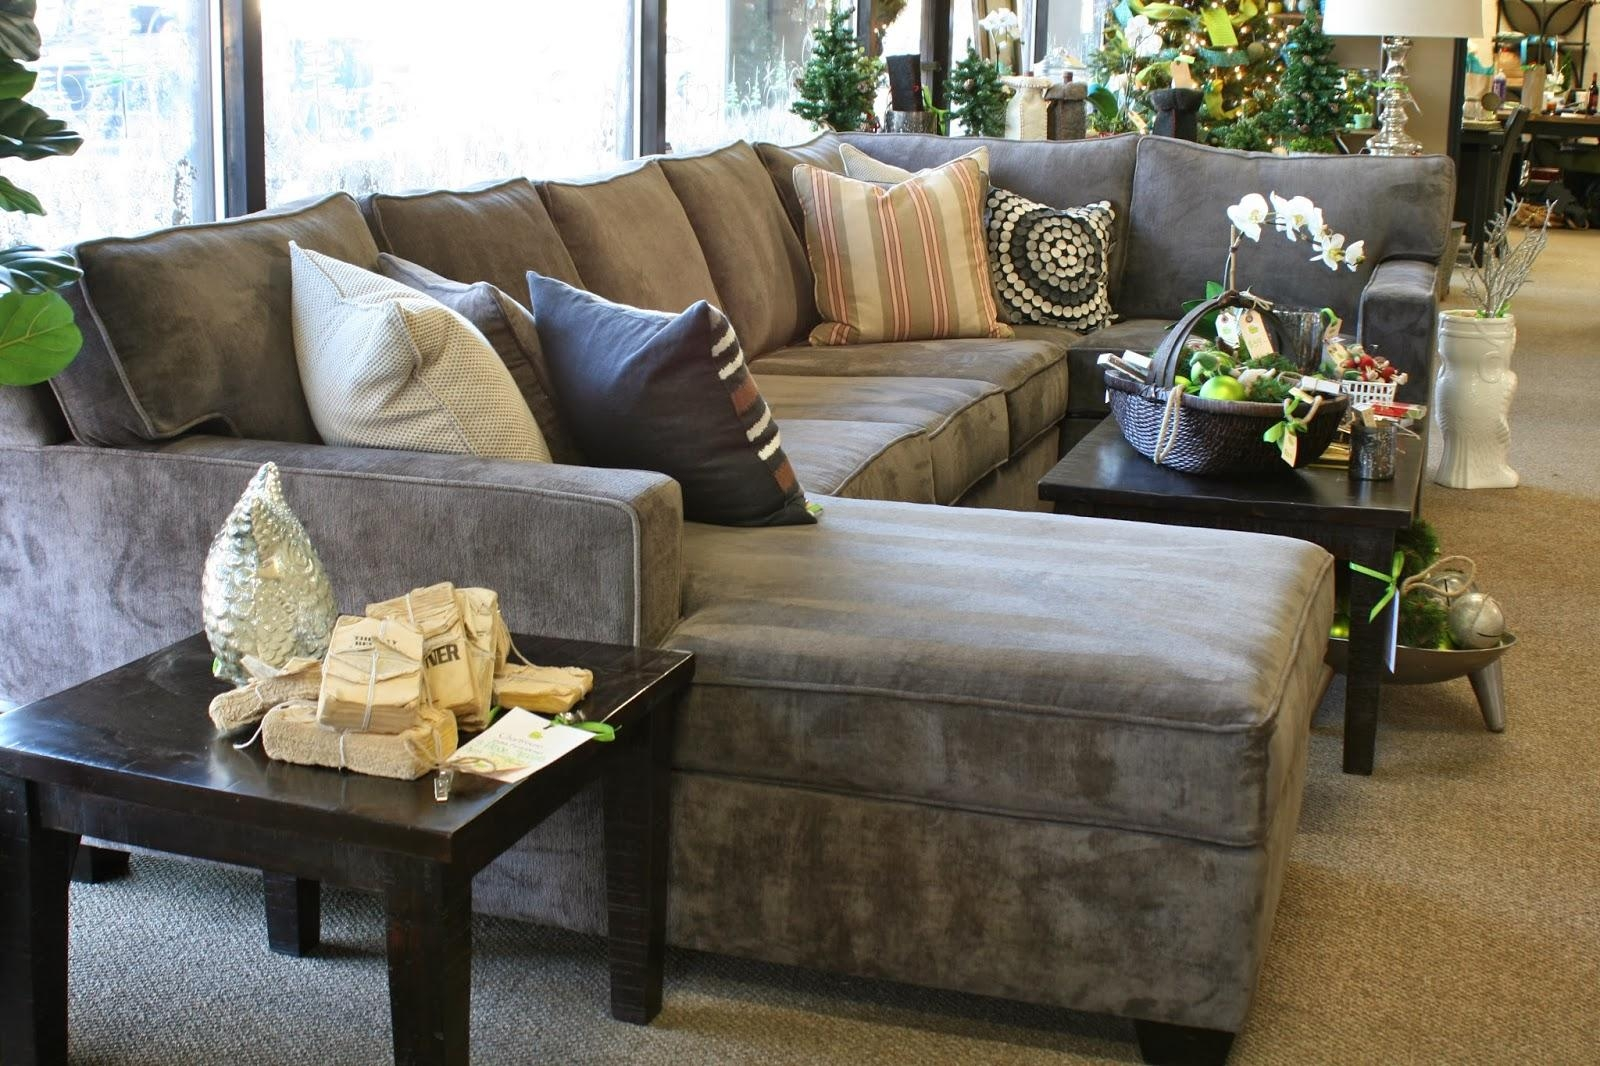 Serta Adelaide Convertible Sofa – Walmart | Tehranmix Decoration Intended For Lee Industries Sectional (View 19 of 20)